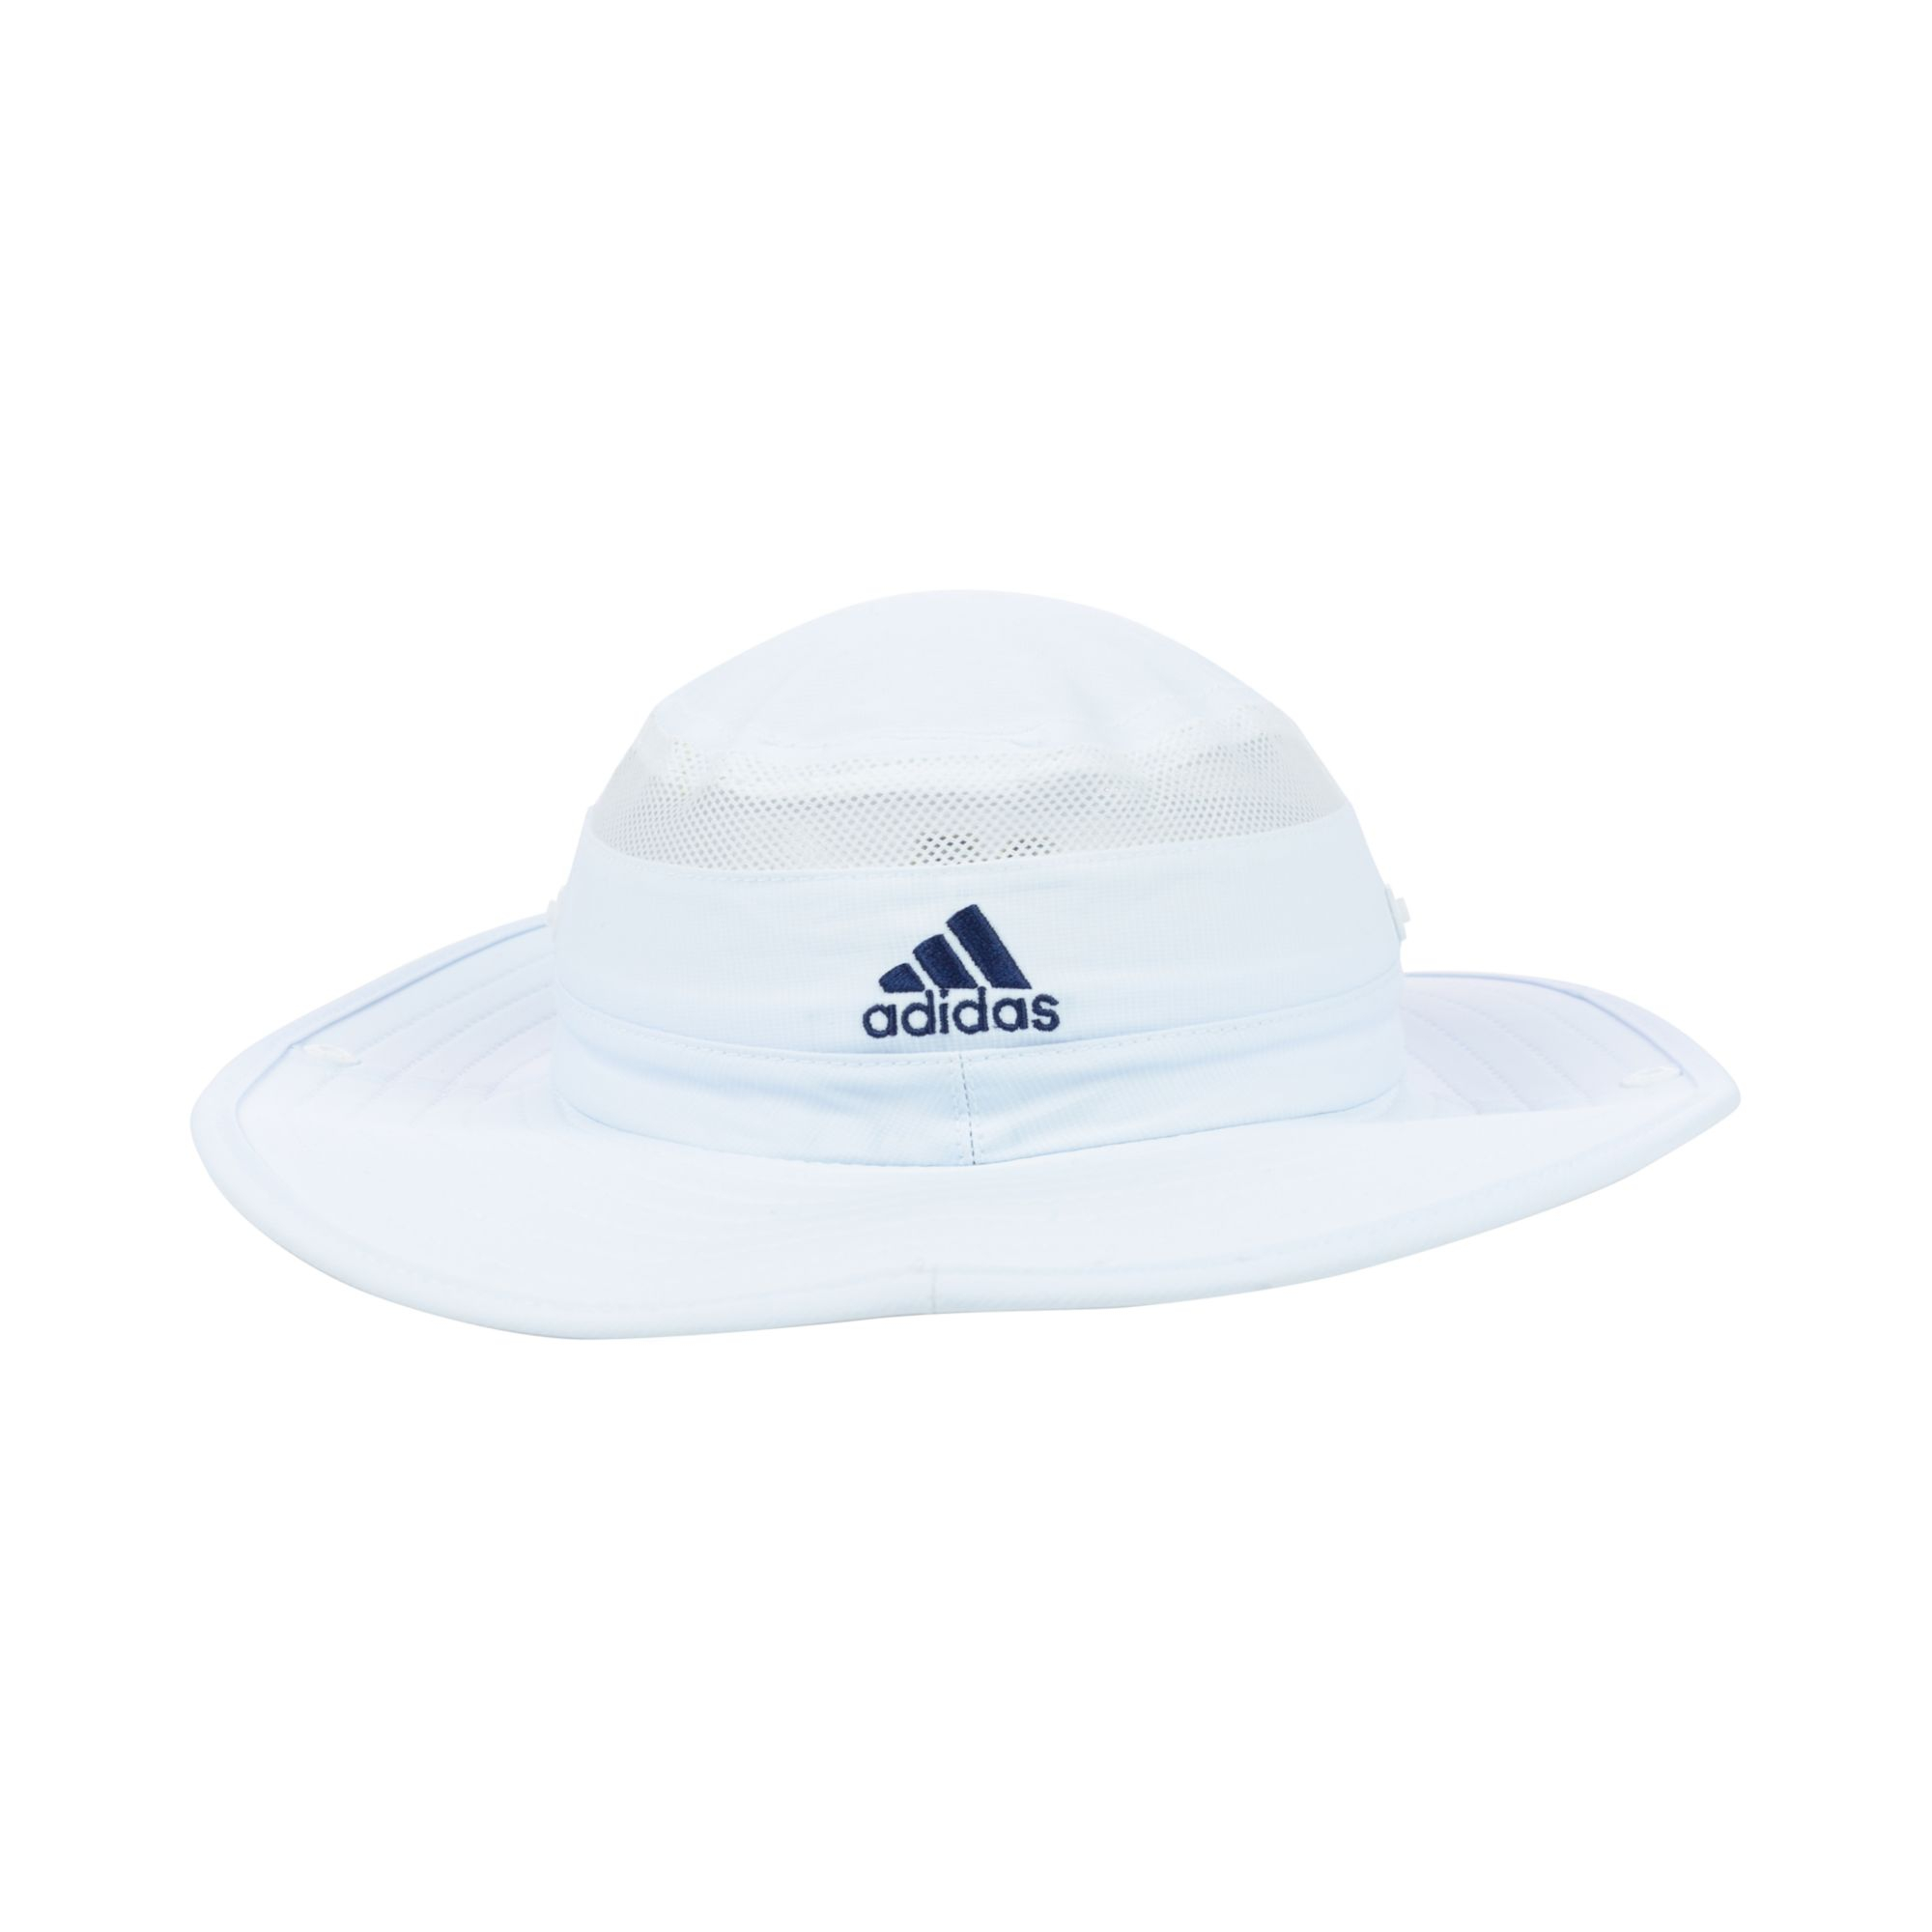 Lyst Adidas Notre Dame Fighting Irish Cus Safari Hat In White a01f9240aaf1